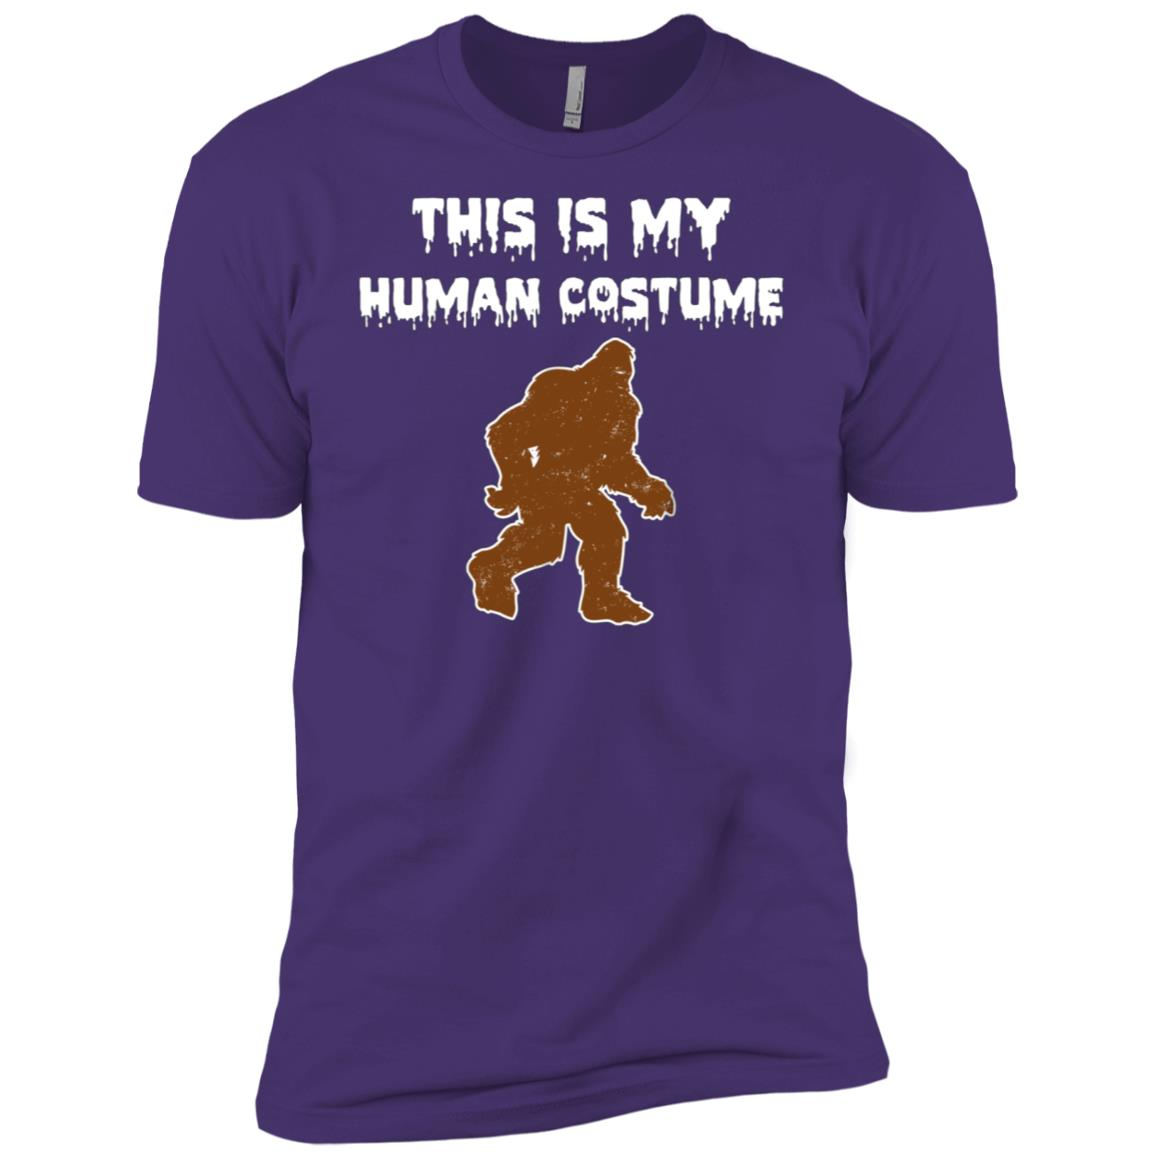 This Is My Human Costume I'm Really a Bigfoot Men Short Sleeve T-Shirt